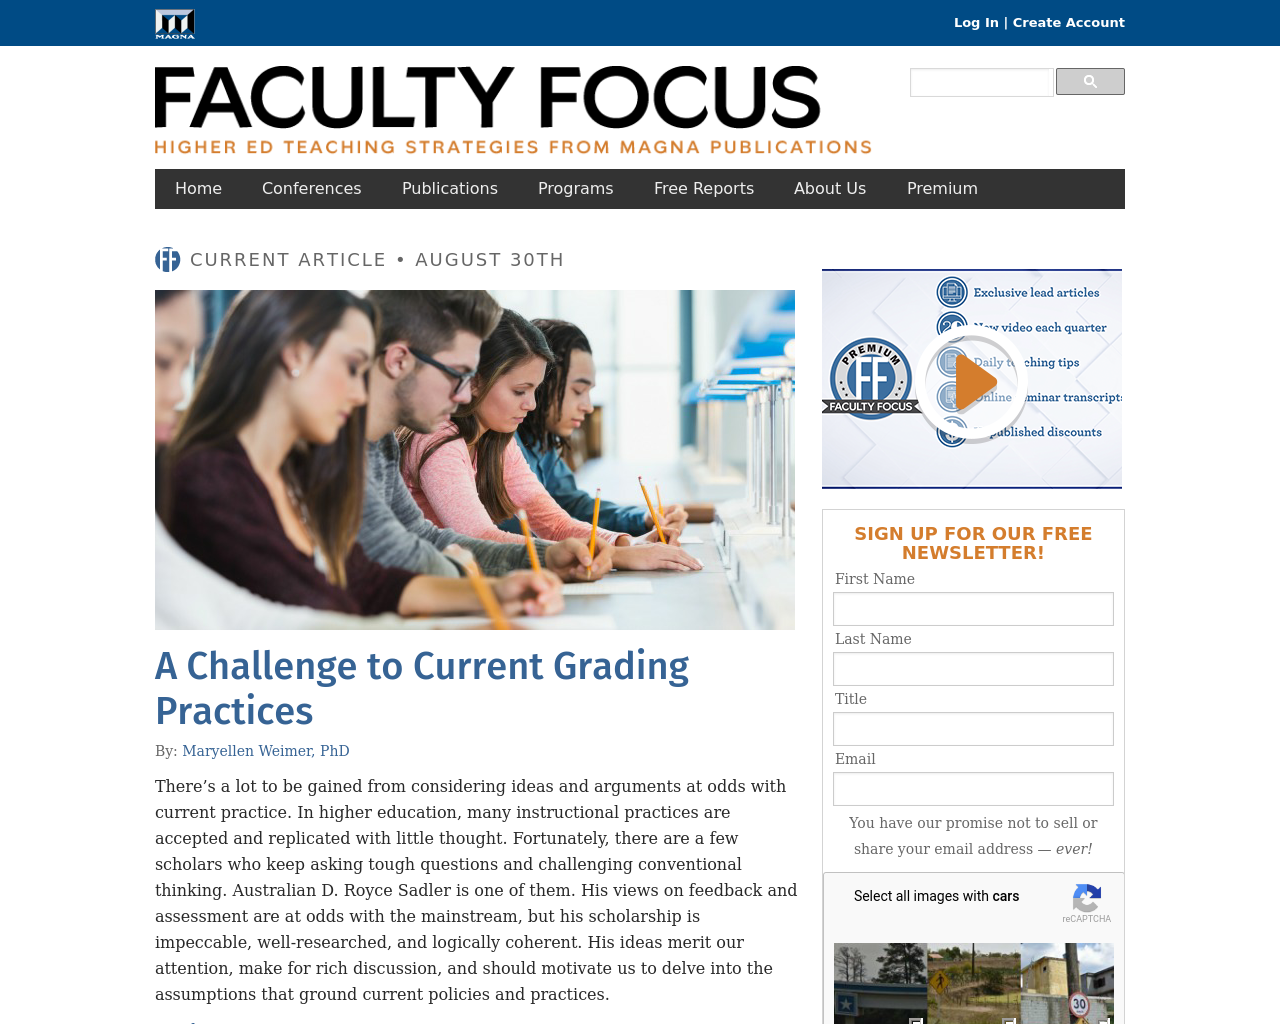 Faculty-Focus-Advertising-Reviews-Pricing